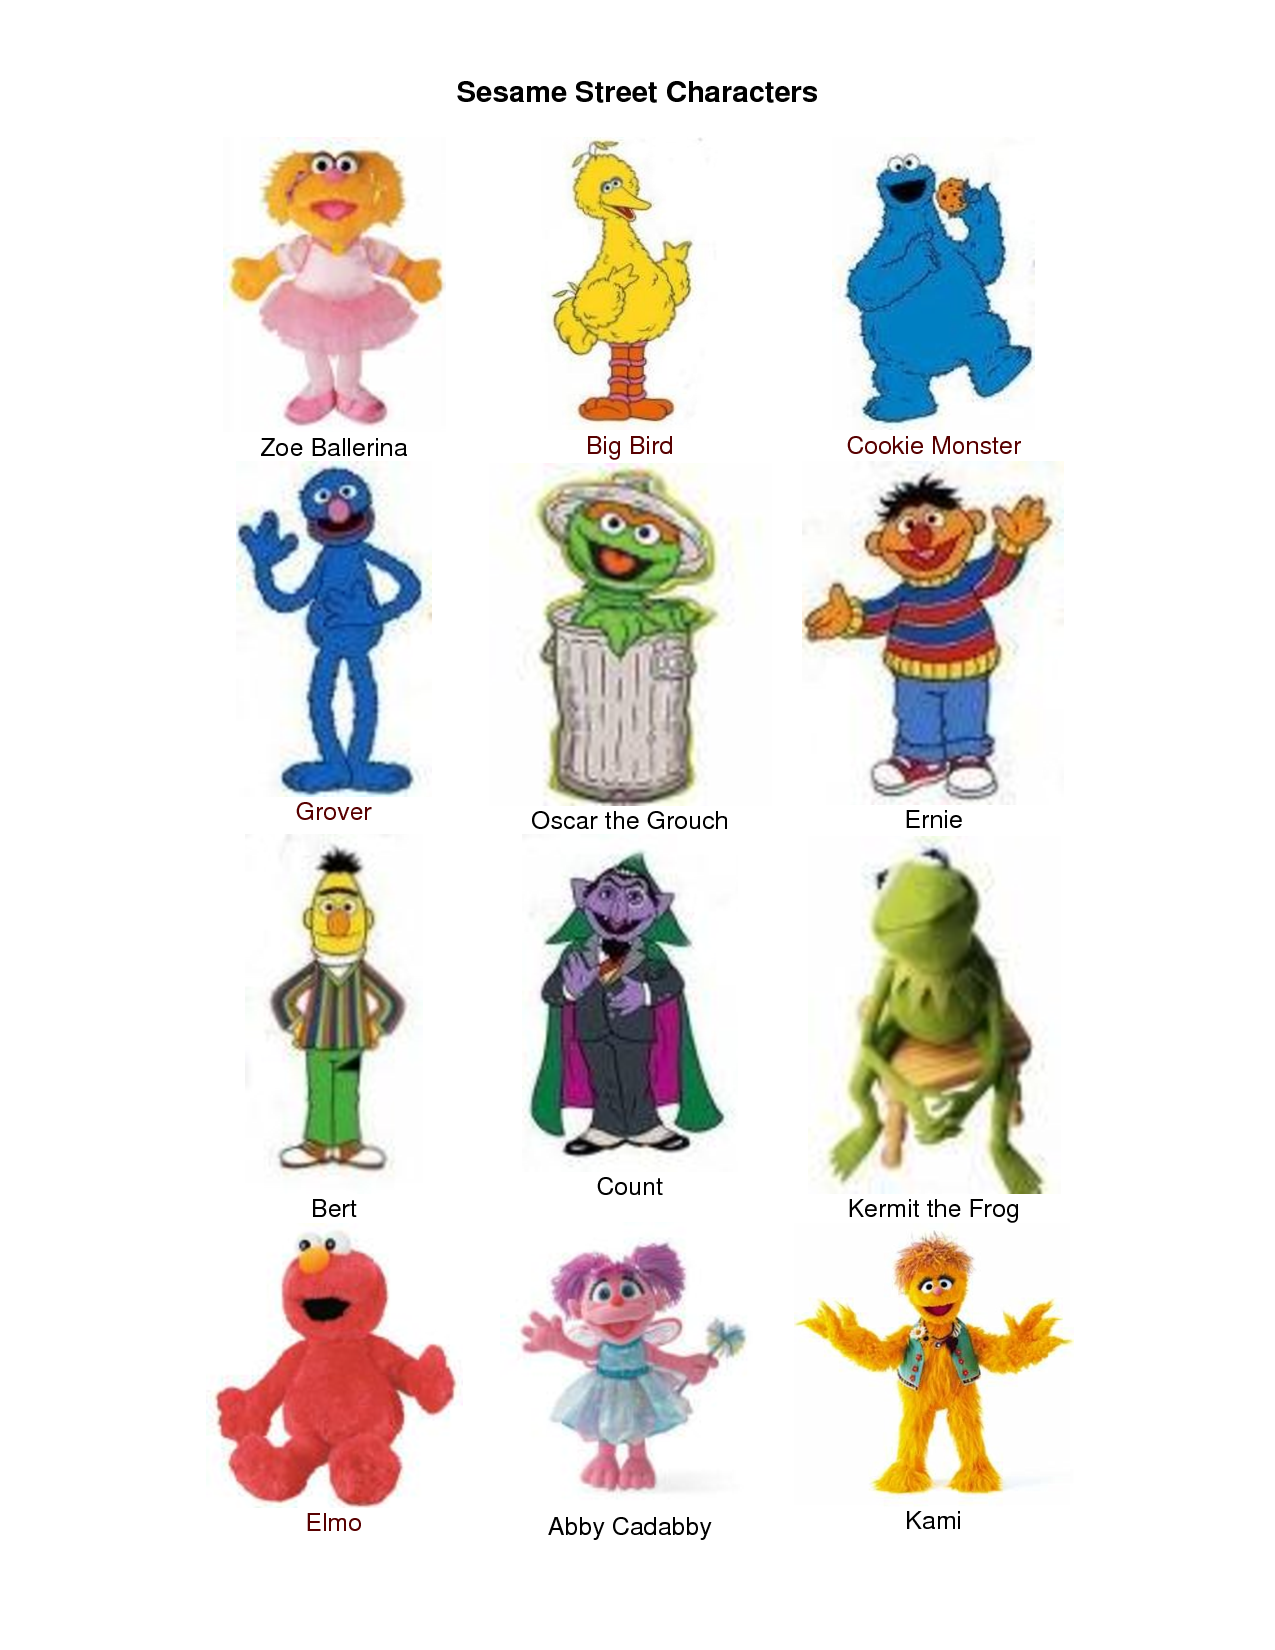 sesame street character pics - Google Search | Pieces and parts ...